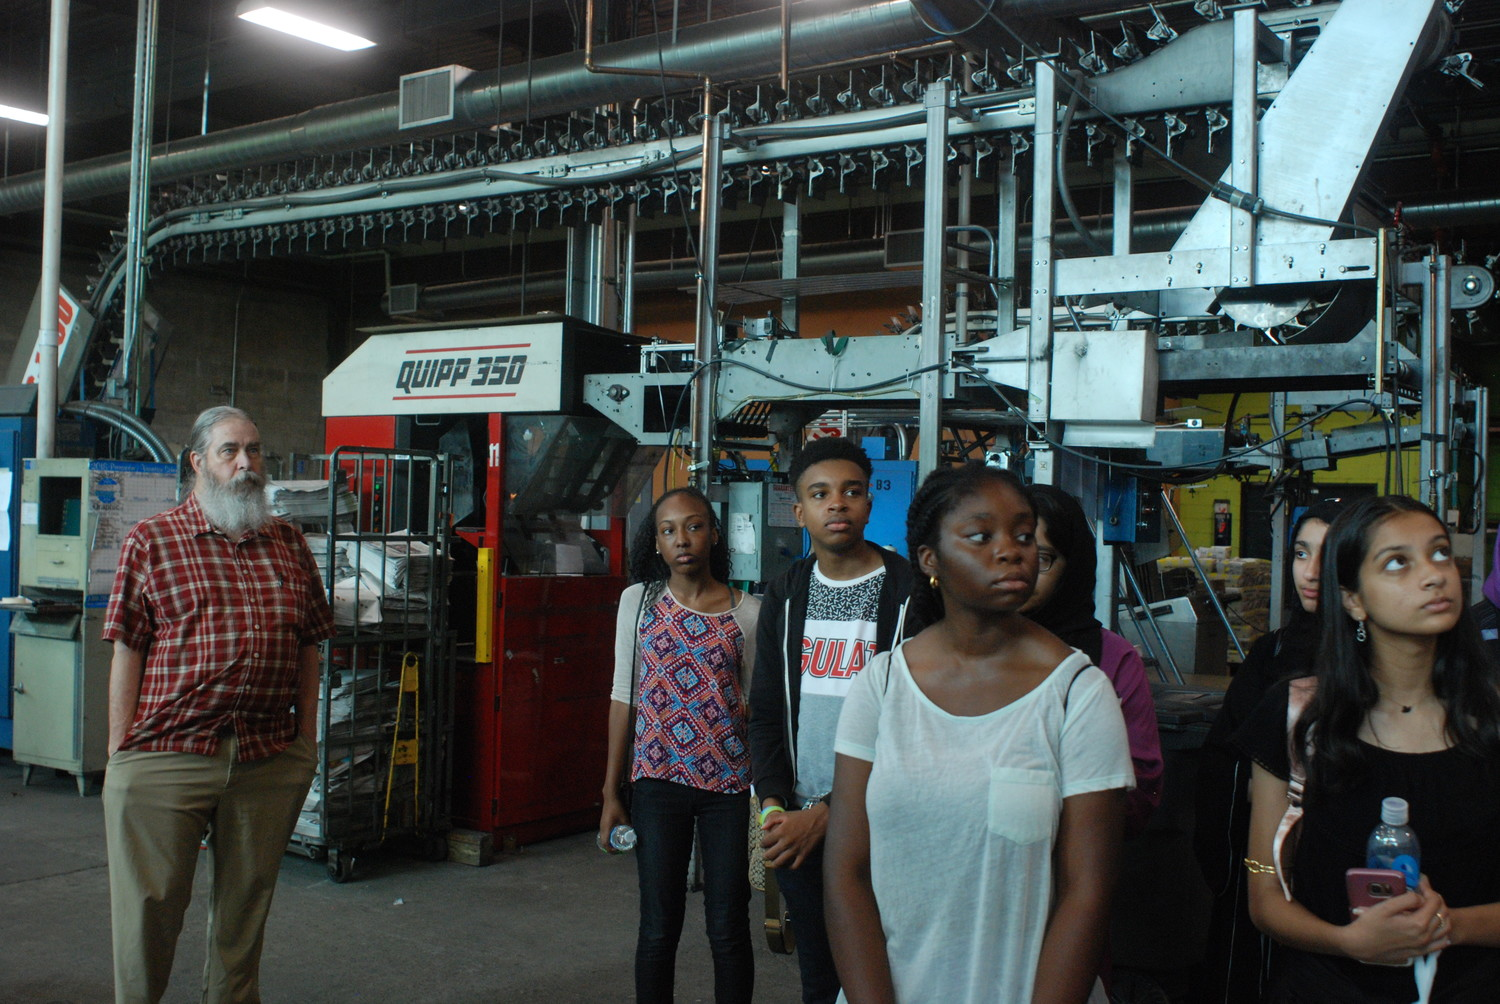 Institute participants toured Herald Community Newspapers in Garden City, including the pressroom. They were joined by, at left, Timothy Denton, editor of the Franklin Square-Elmont and Valley Stream Heralds.